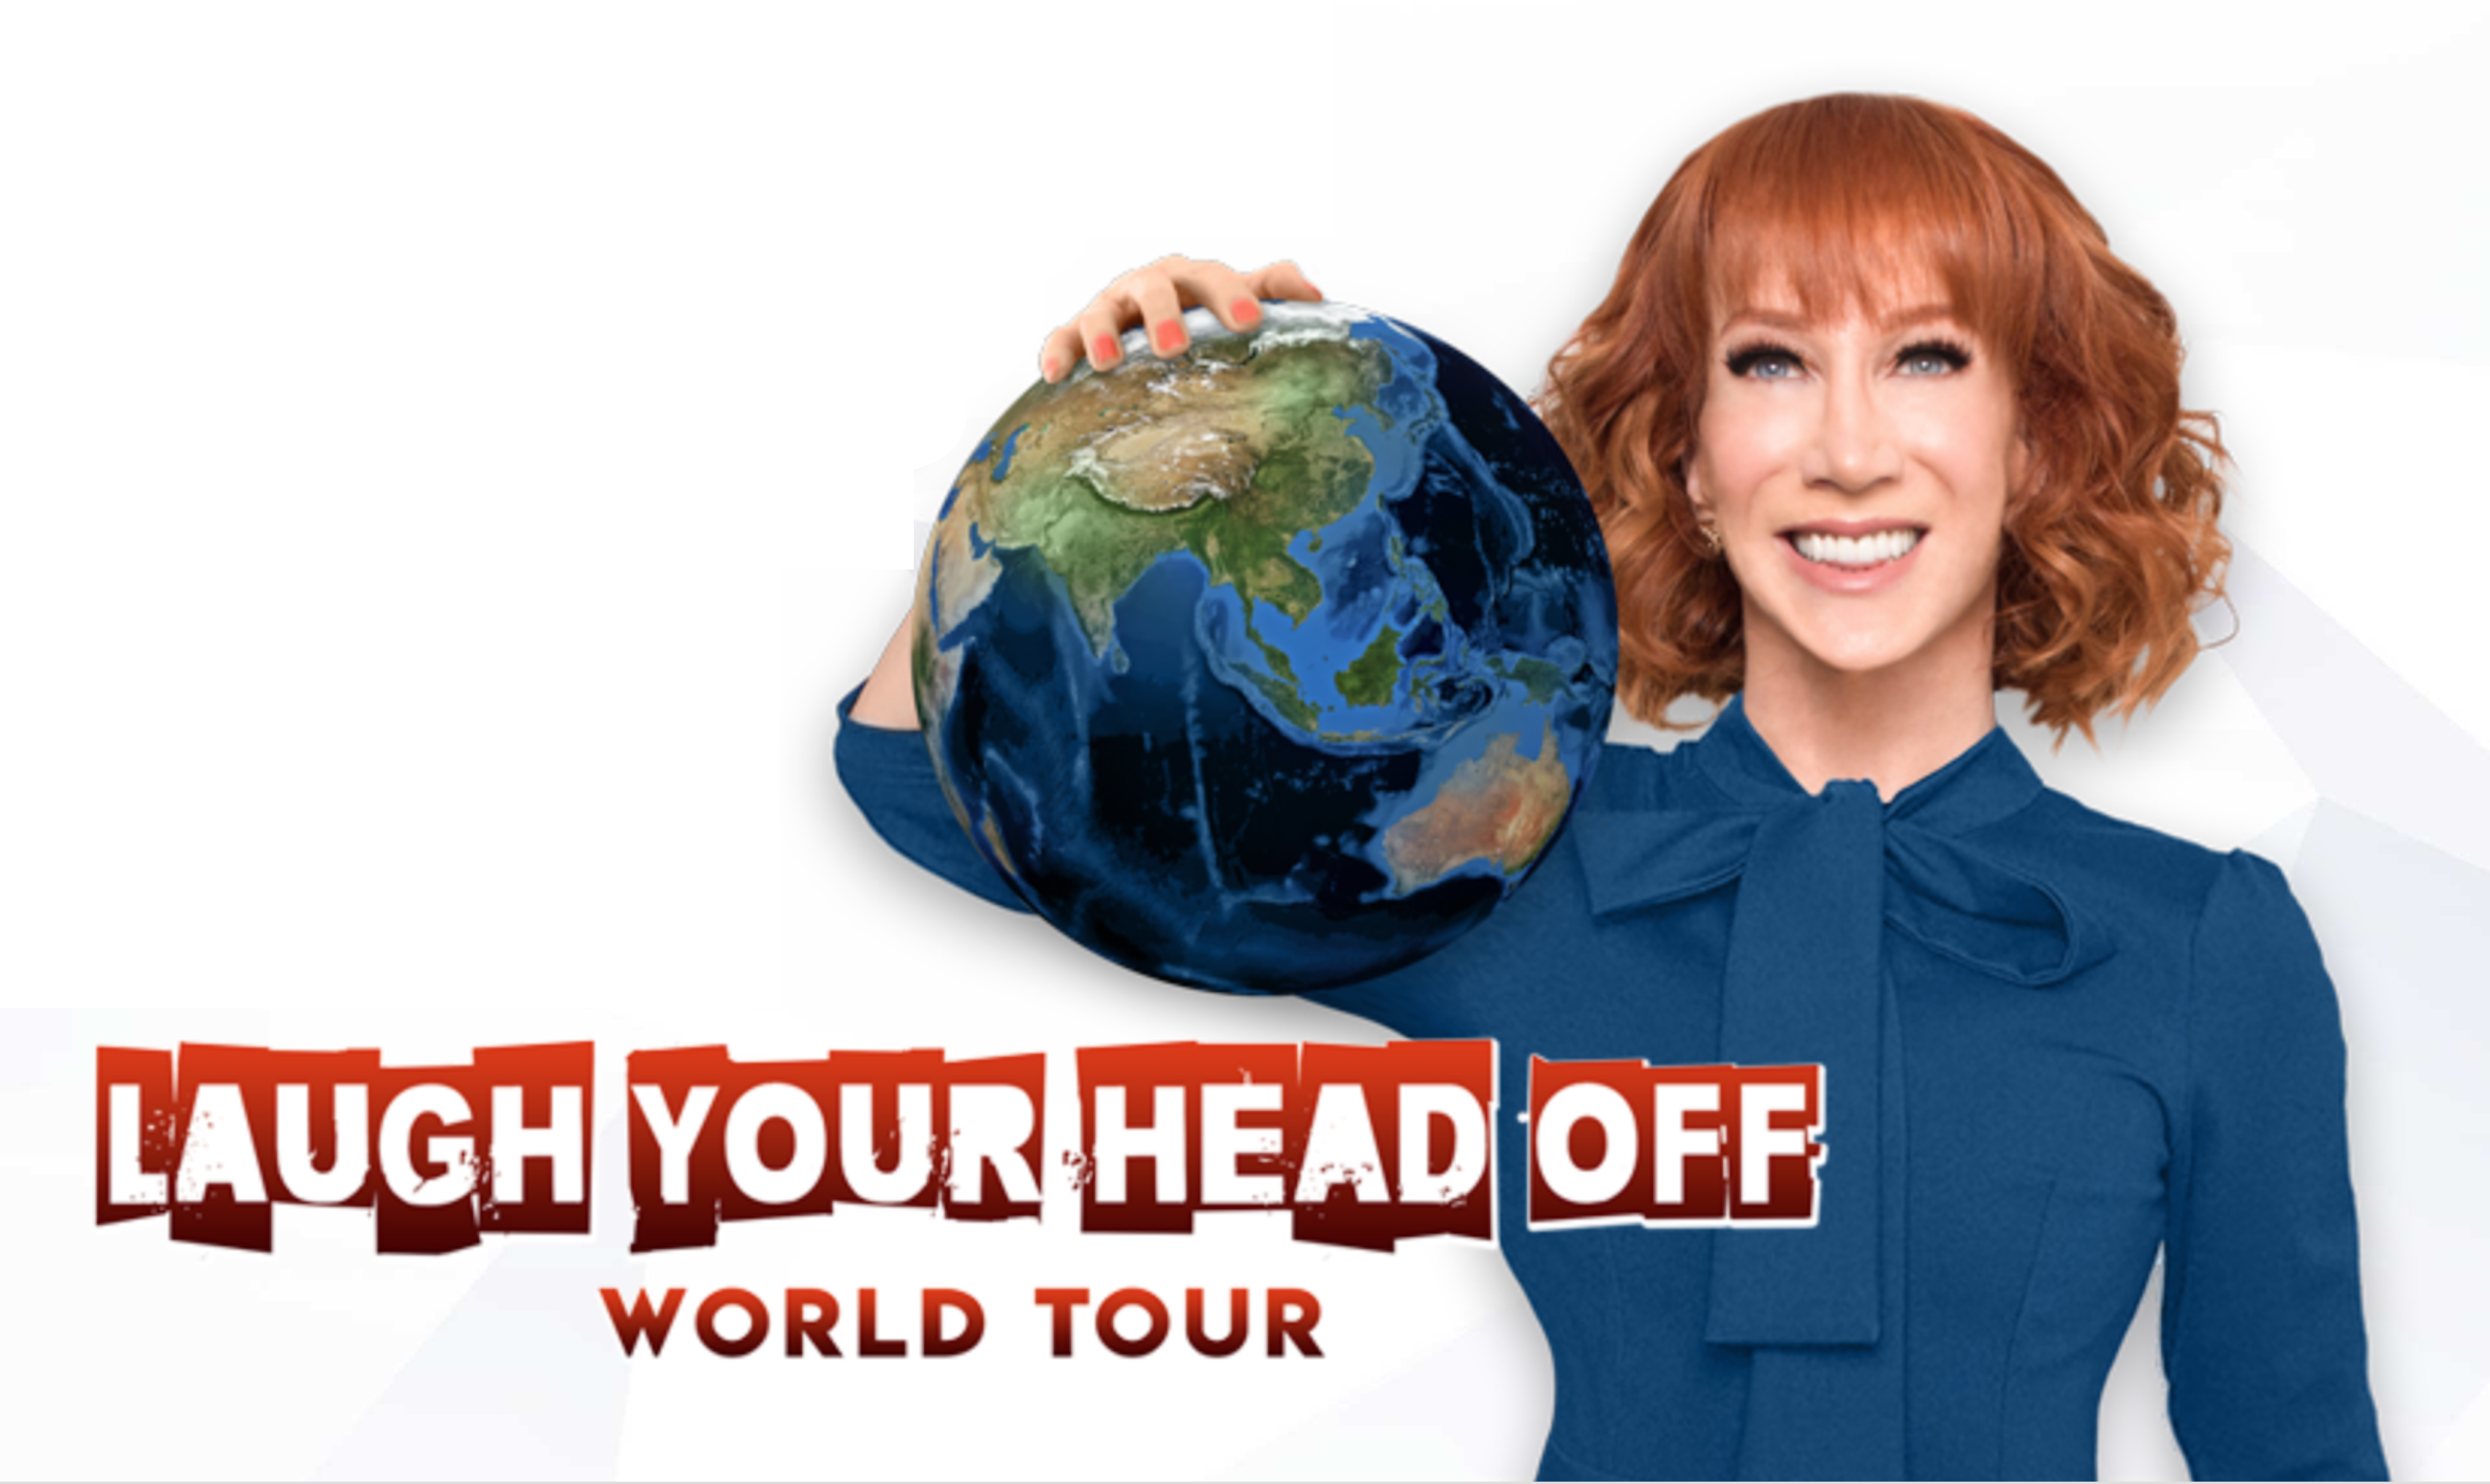 Elizabeth Ii Last Name Kathy Griffin Continues Her Comeback From Severed Trump